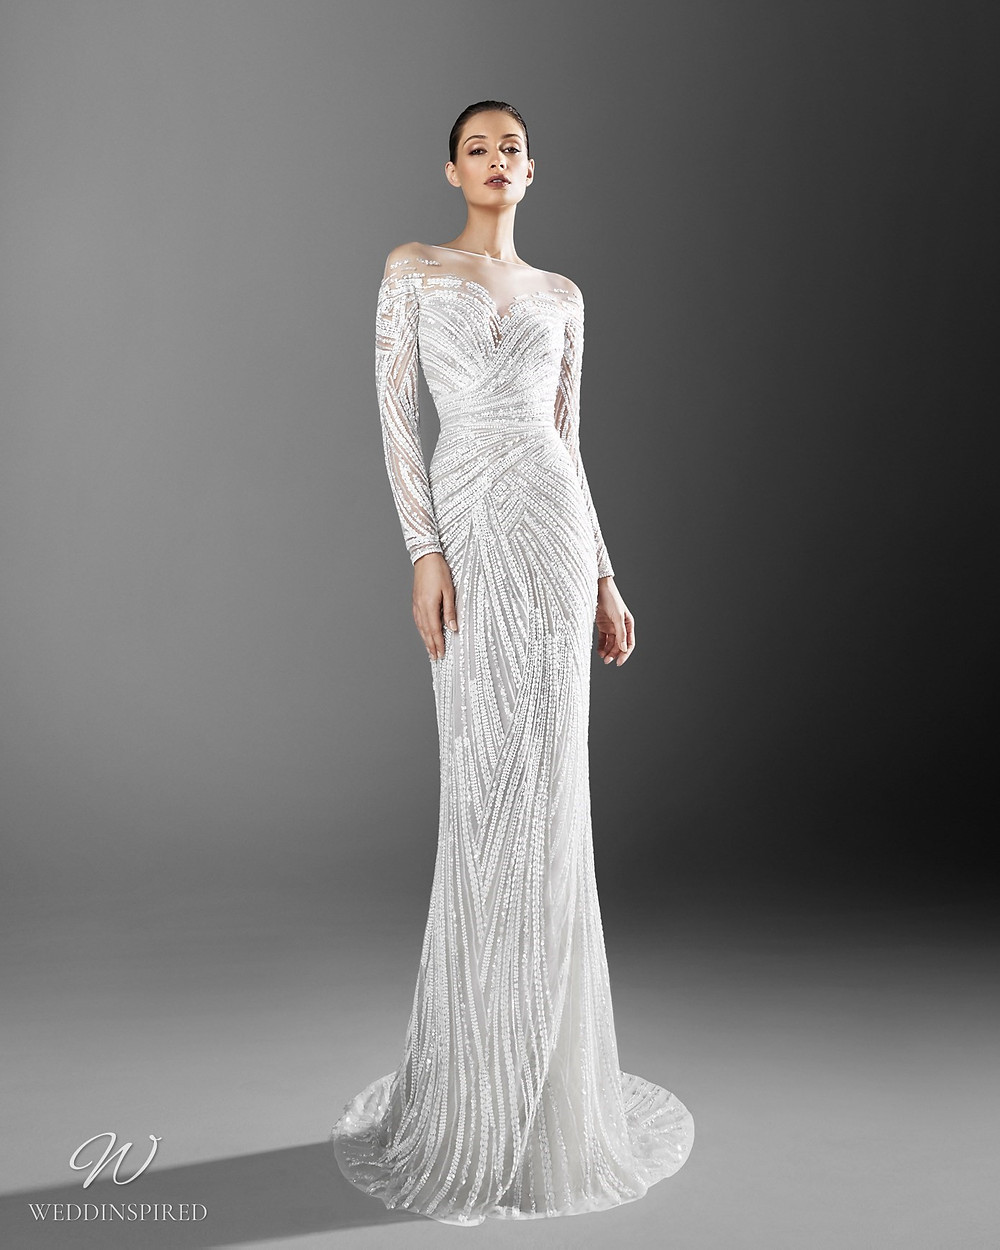 A Zuhair Murad mermaid wedding dress with crystals and an illusion neckline